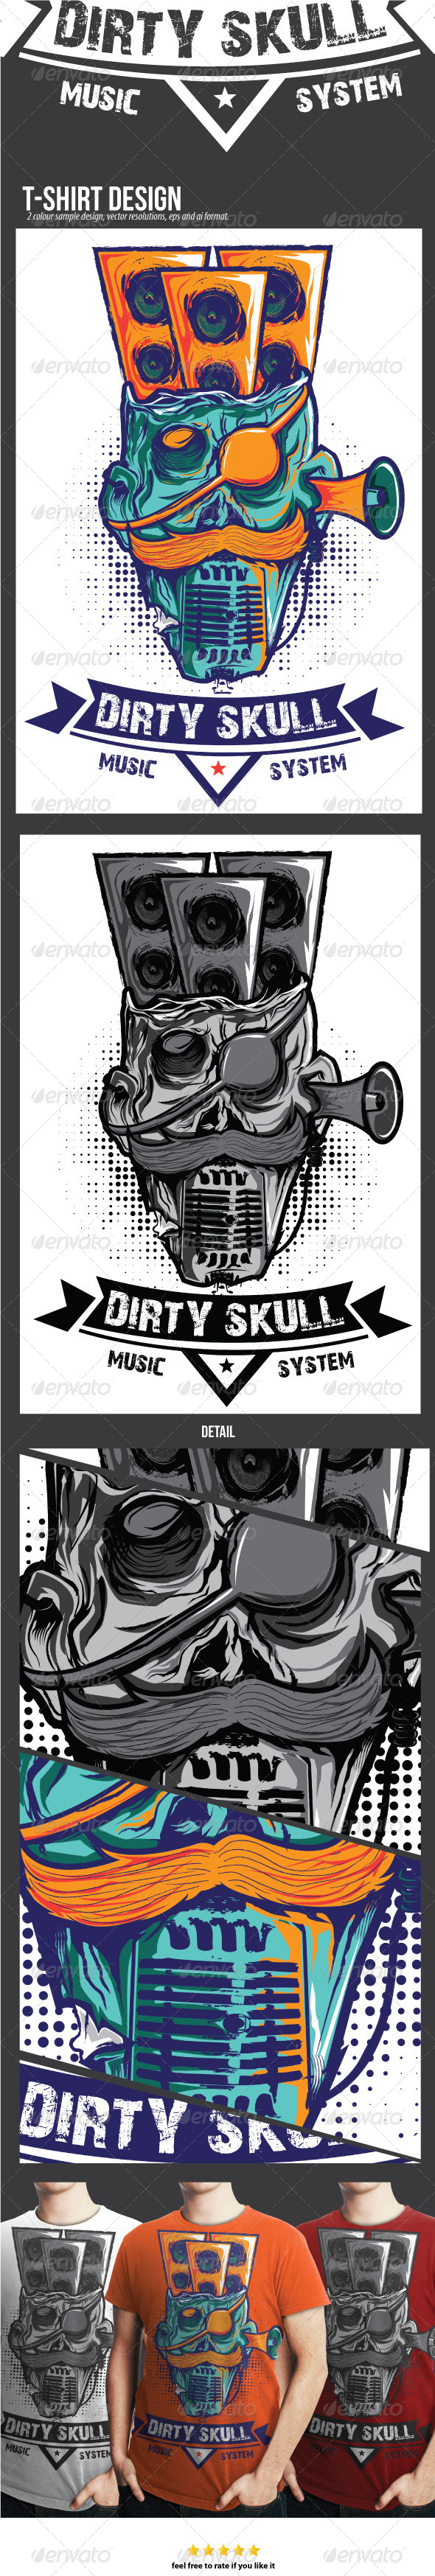 GraphicRiver Dirty Skull Music System T-shirt Design 6706880